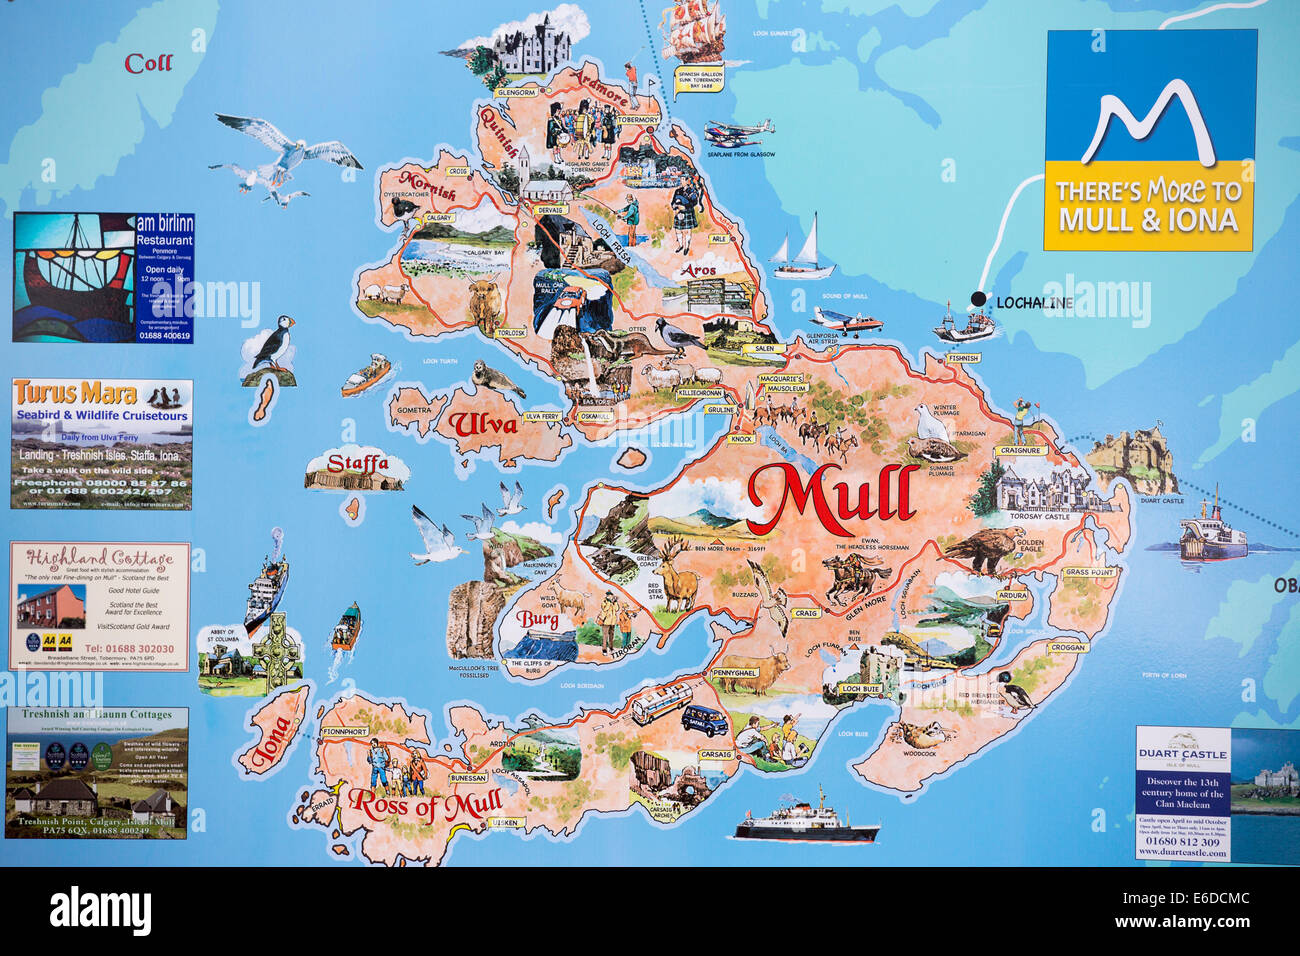 A map of the Isle of Mull Scotland UK Stock Photo Royalty Free